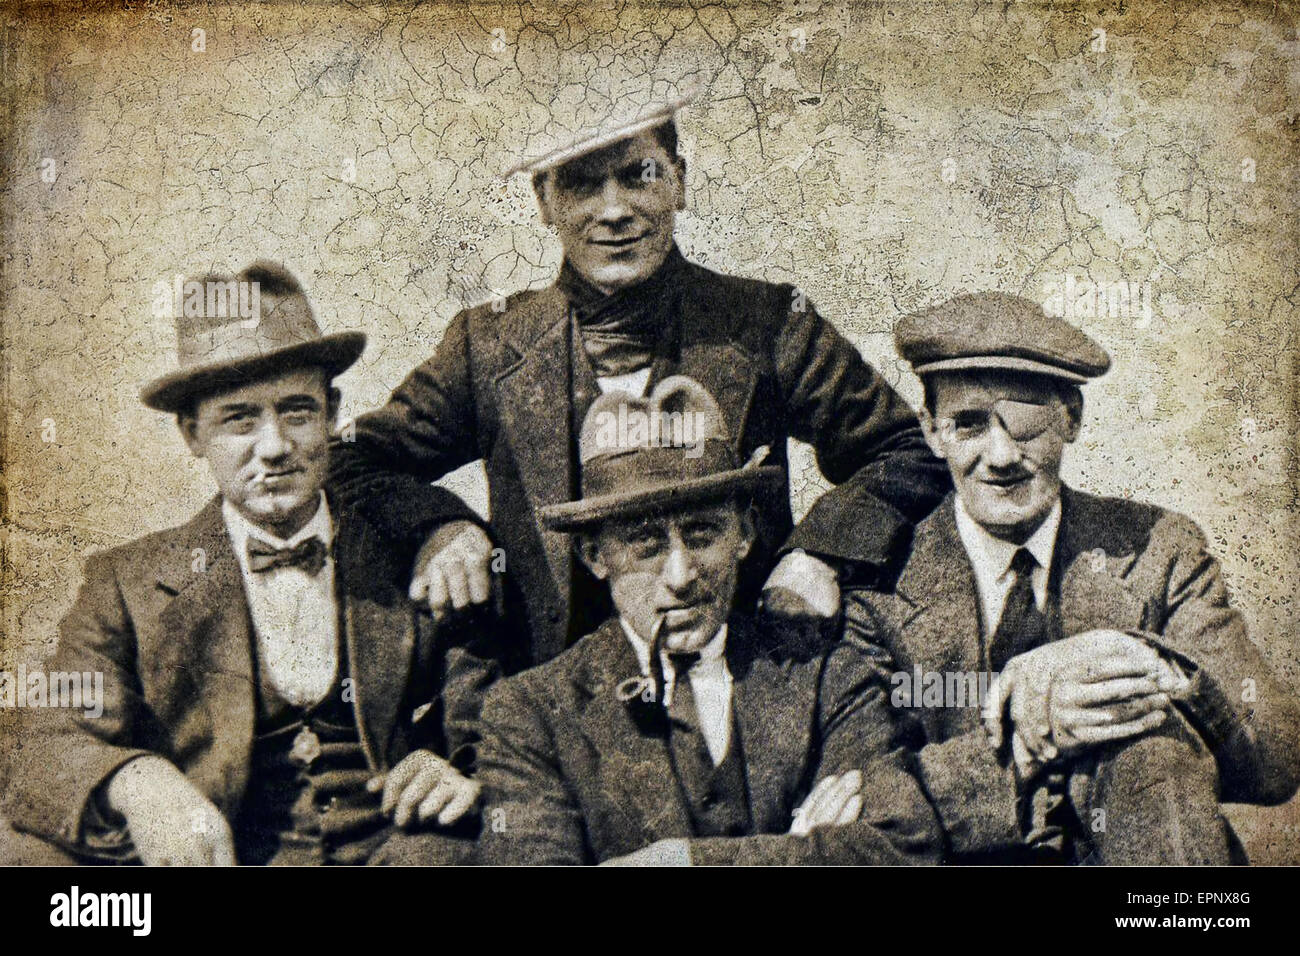 A black and white photograph of a gang of men in the 1920s that was bought back to life using sepia tones and textures. - Stock Image